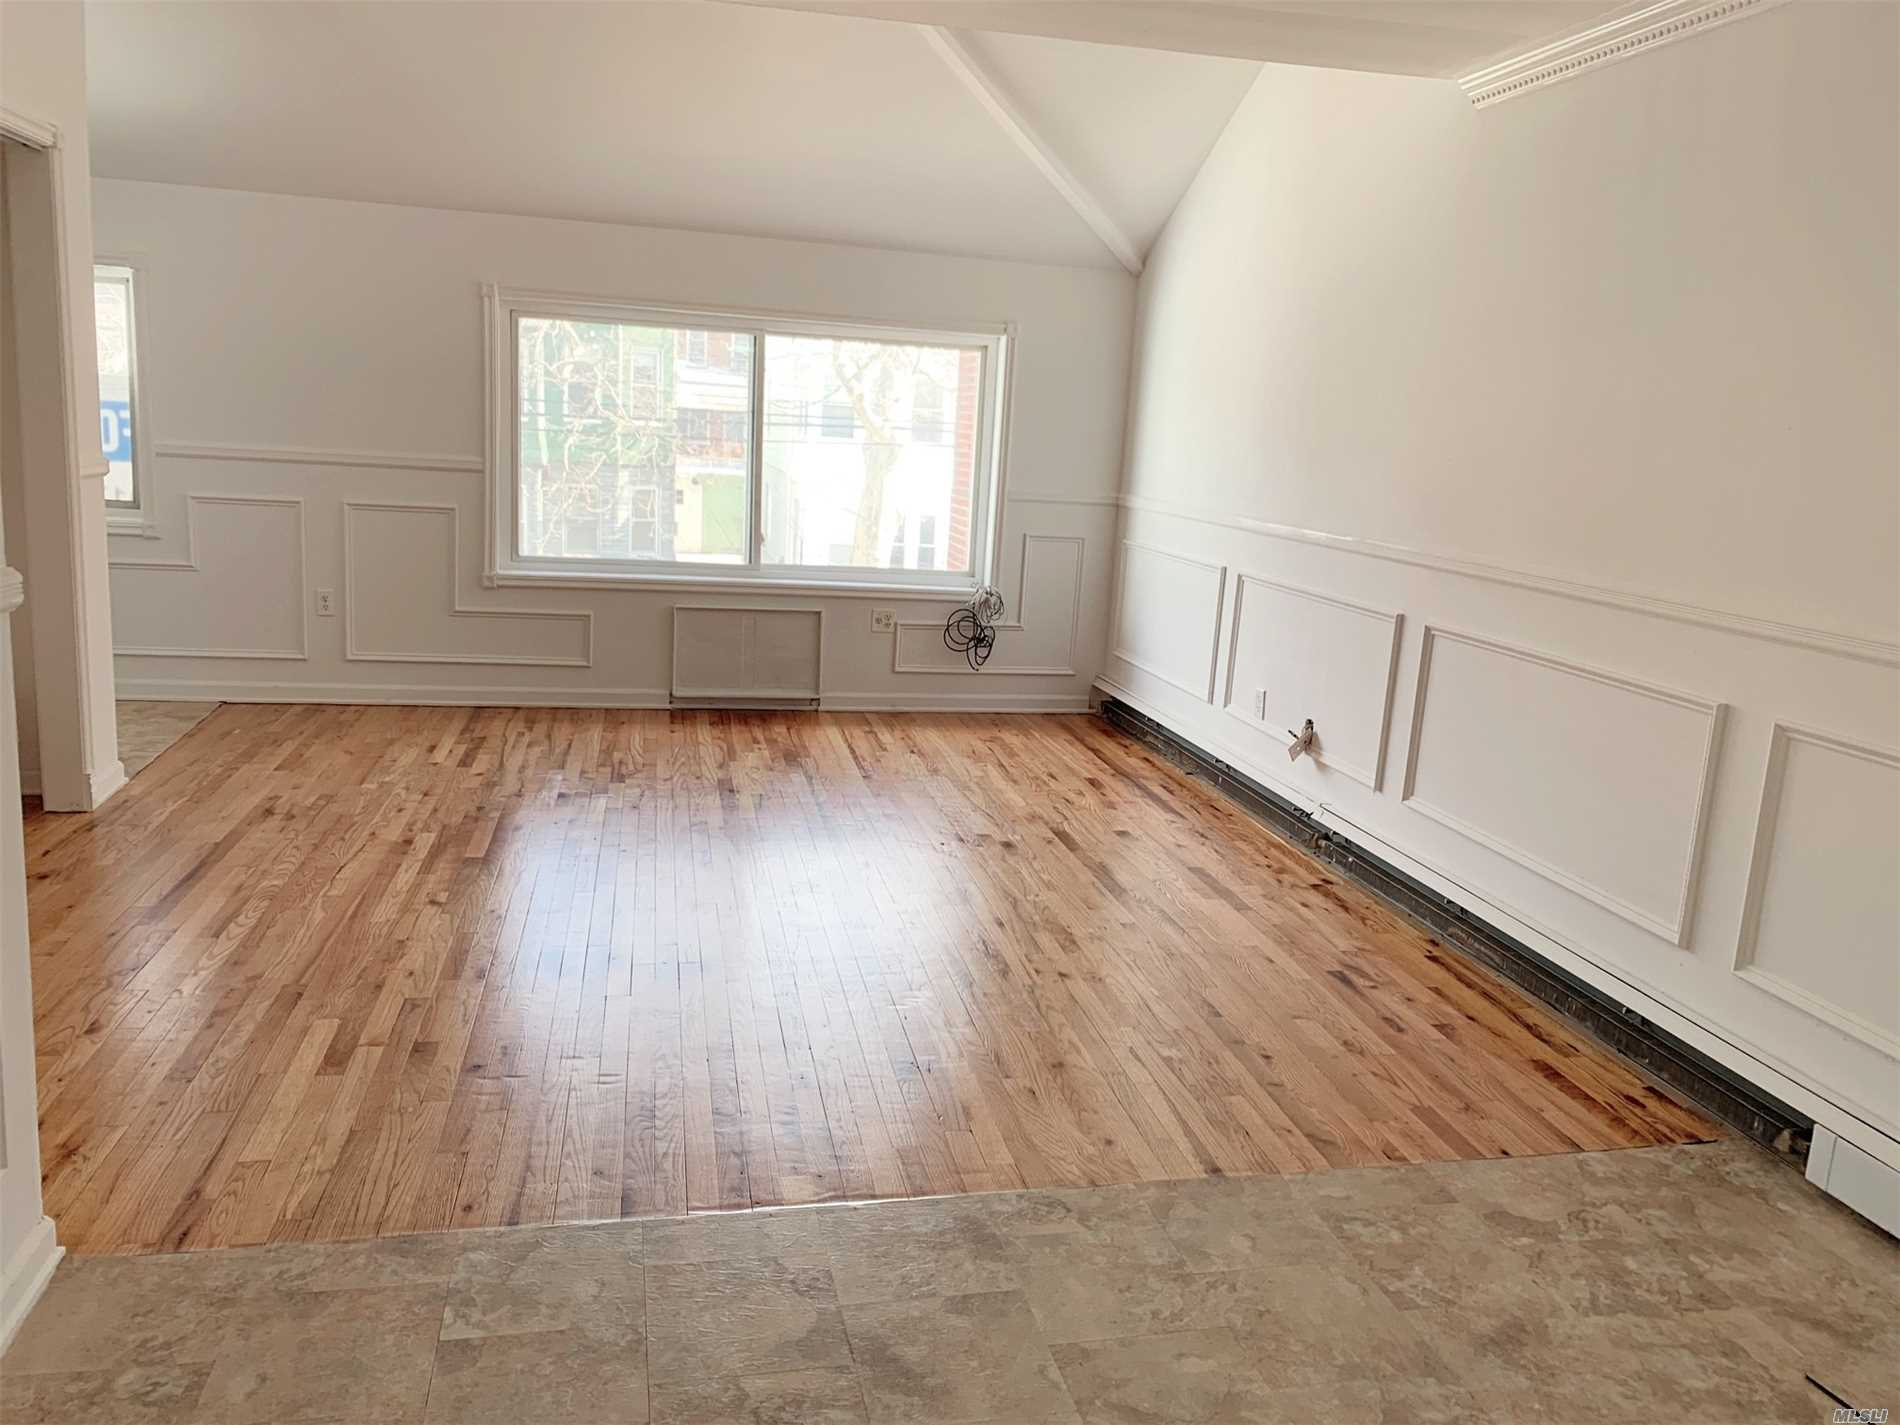 A Duplex Apartment in 2nd floor, 2 big bedrooms +1 master bedroom, spacious living room, dining room, Kitchen, brand new renovation!!!!! The upper level bedroom can see Manhattan view. one Assigned parking. Close To Bj, Target, 7/11, Pc Richard, Dunkin Donuts, and Restaurants. Tenant Pays Gas And Electricity. Easy showing!!!